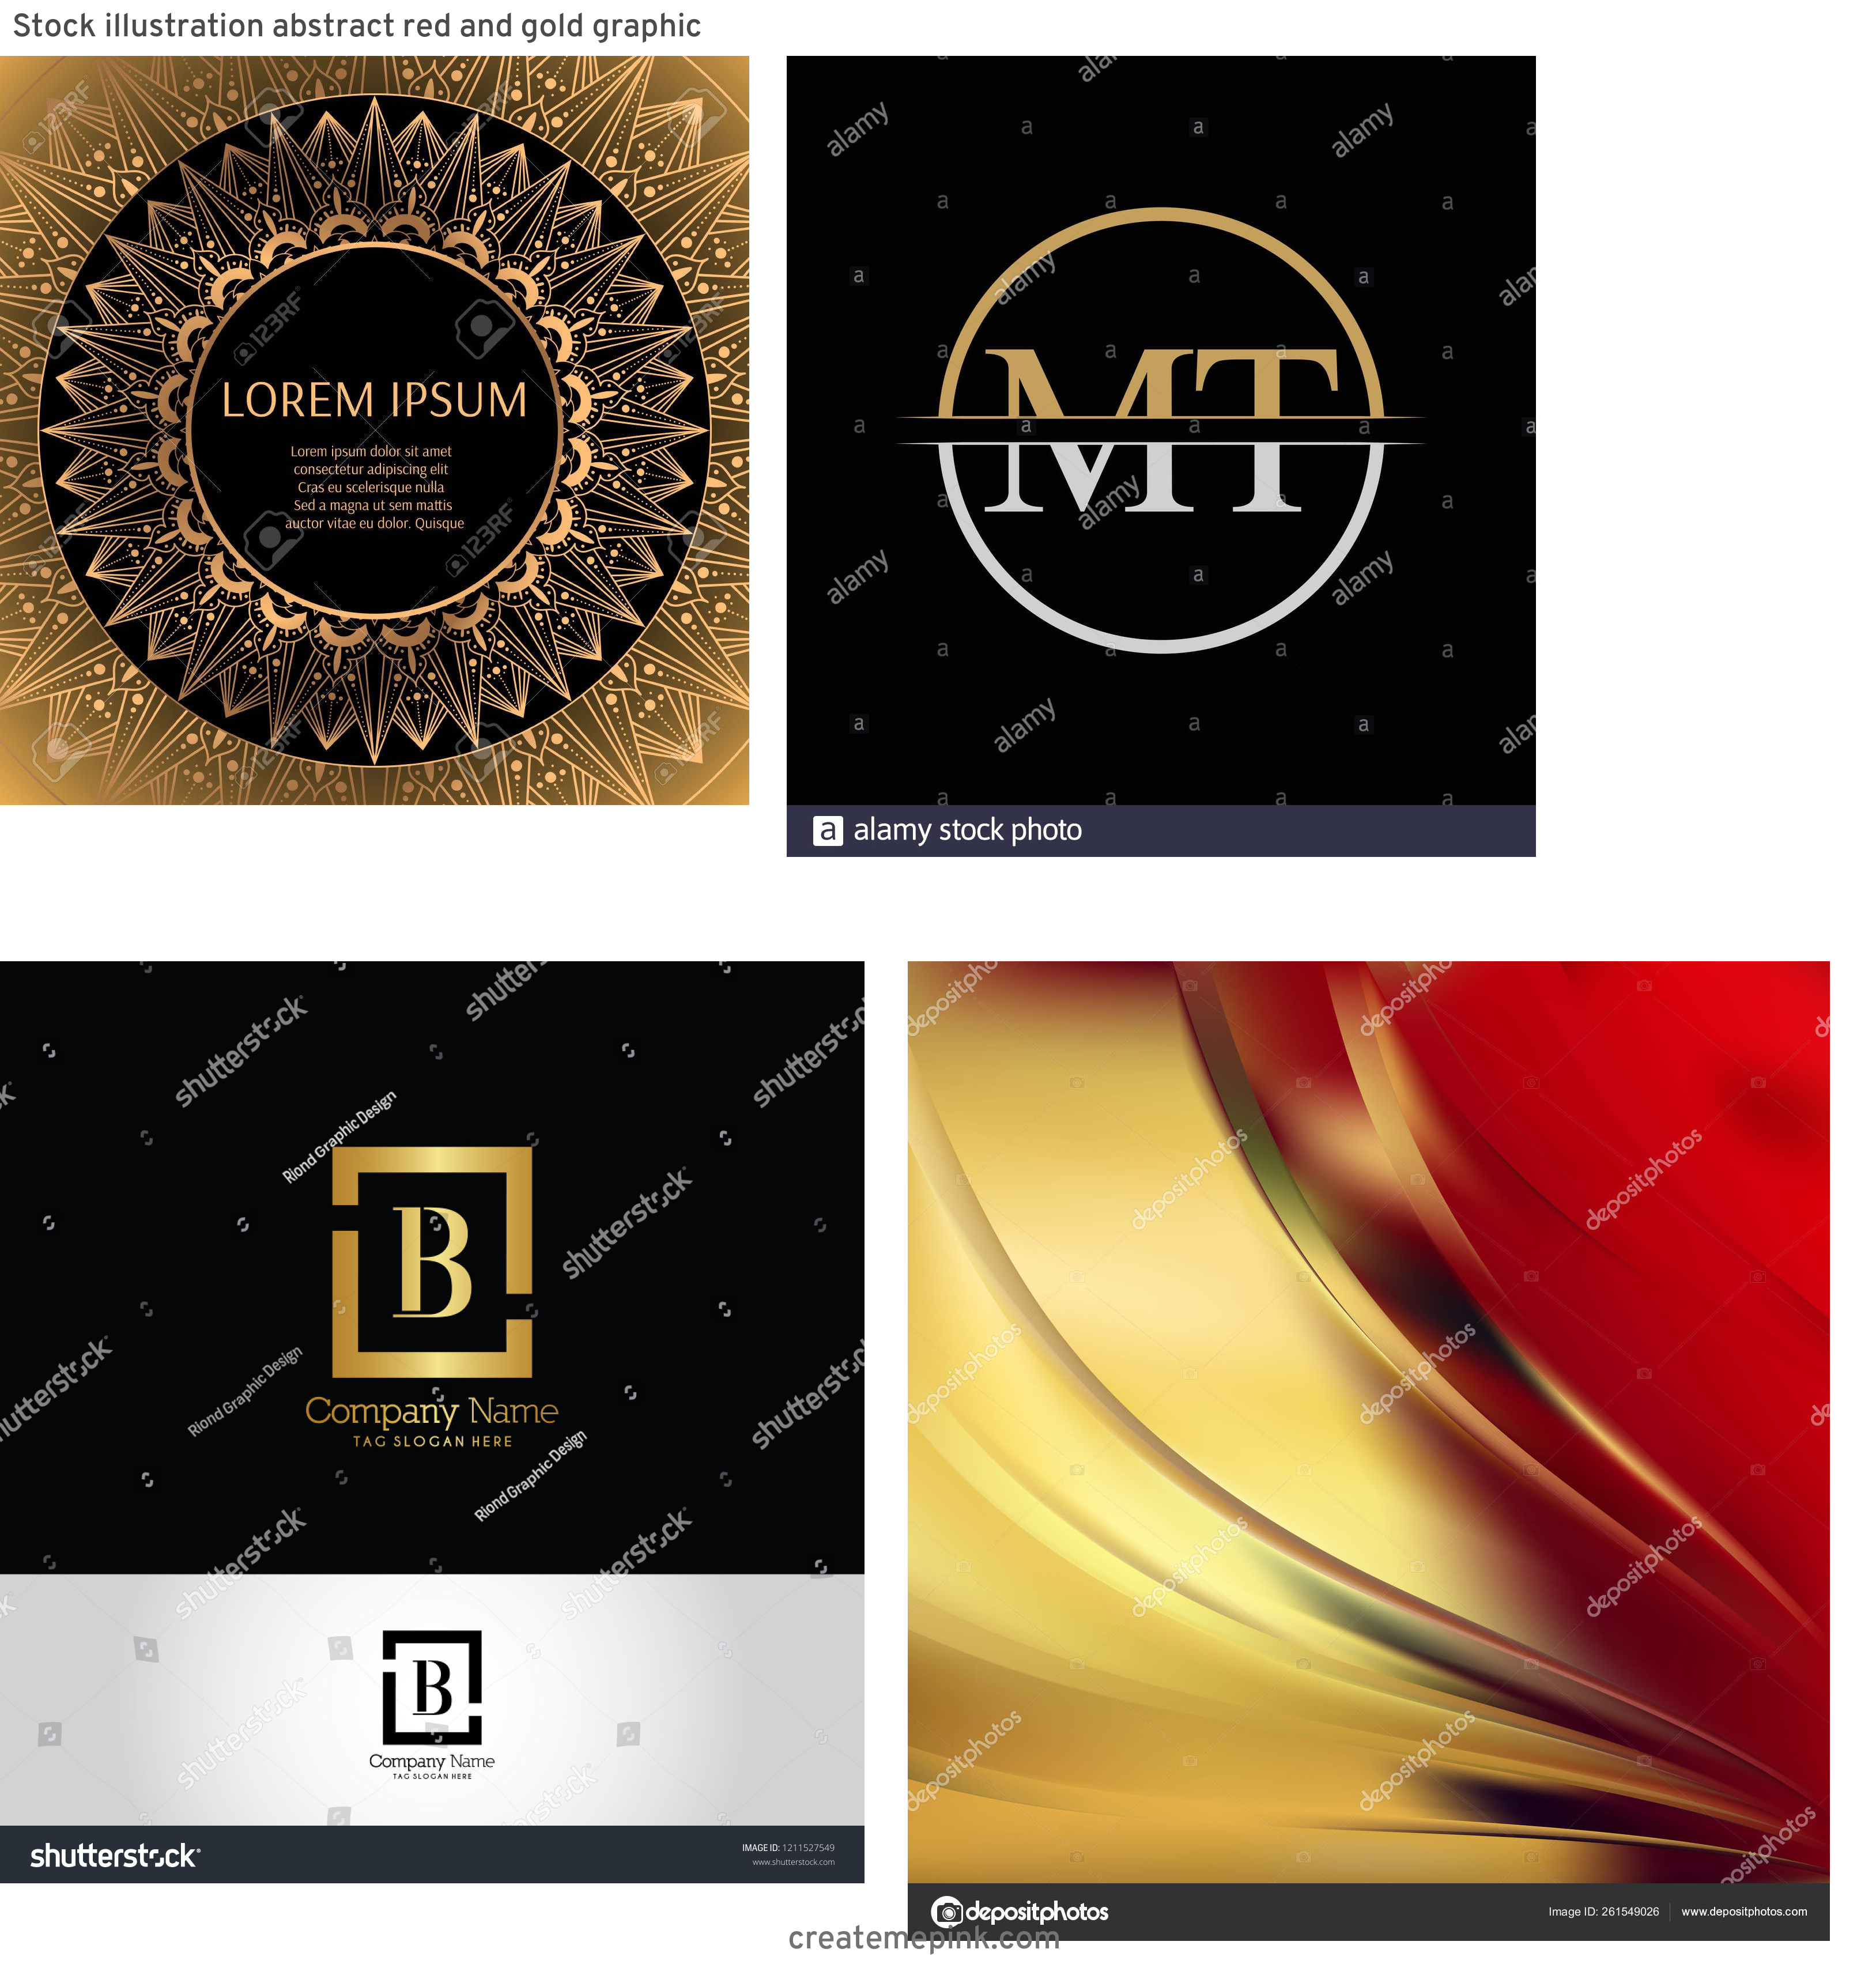 Gold Graphic Design Vectors: Stock Illustration Abstract Red And Gold Graphic